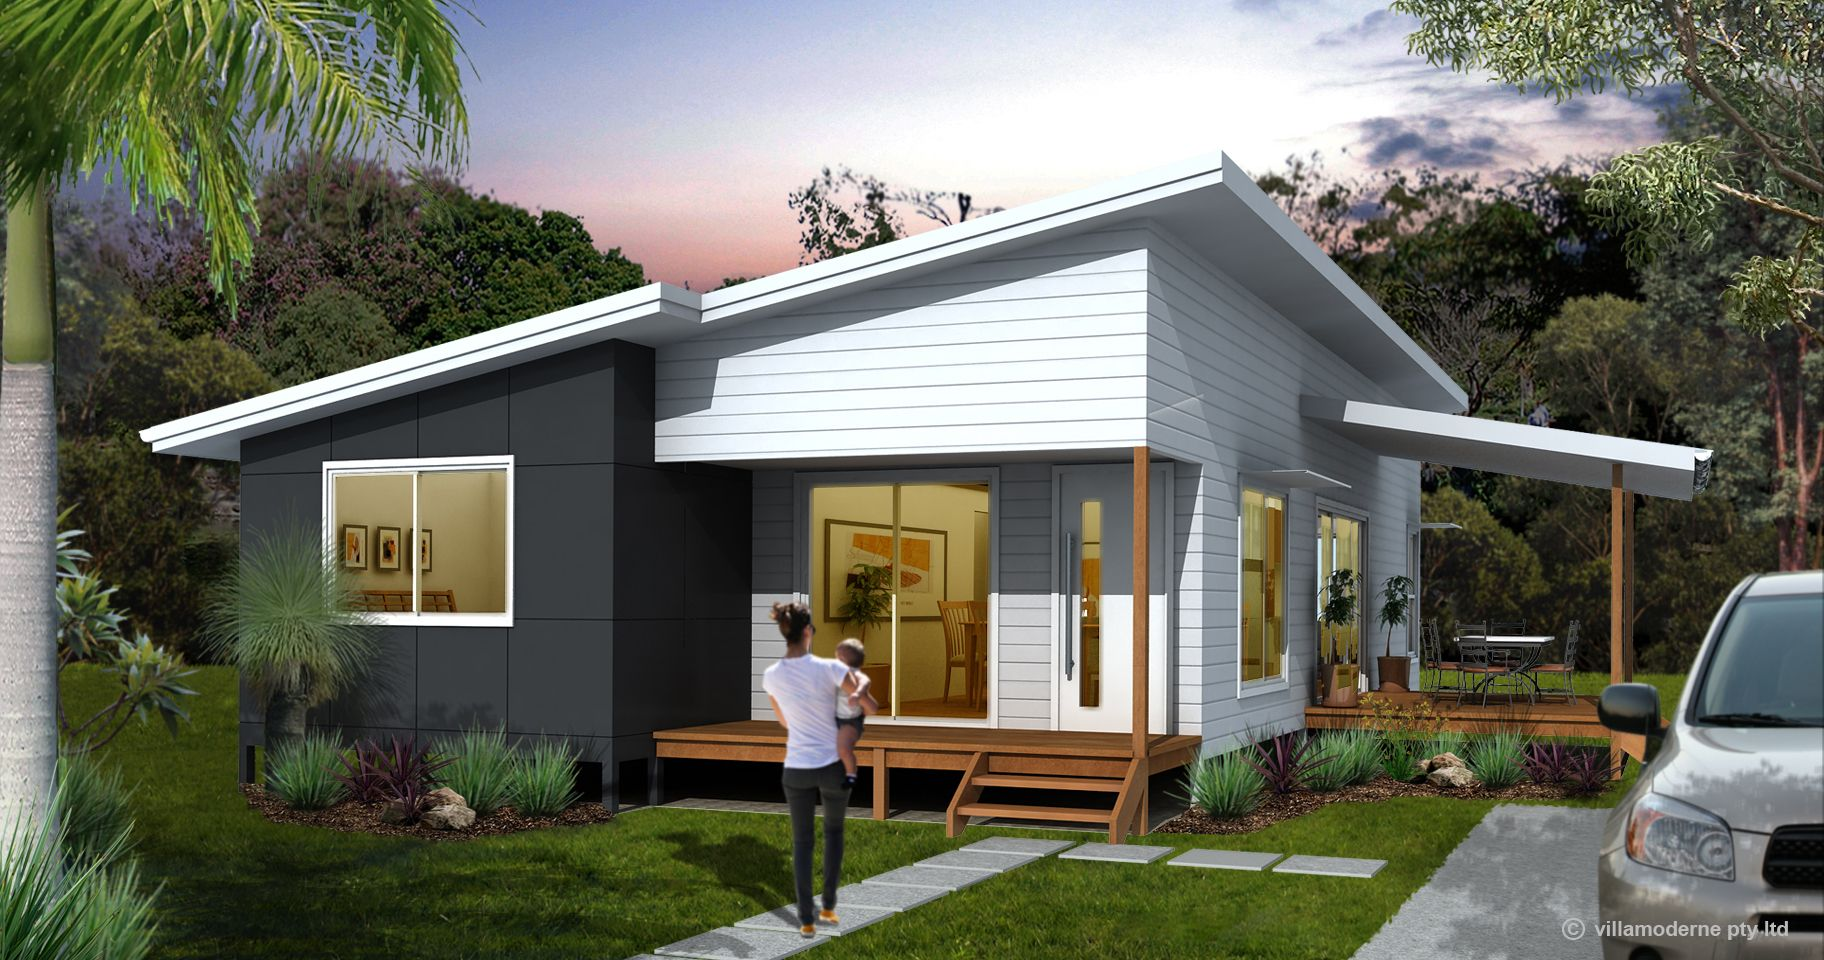 imagine kit homes erbacher 301 kit home exterior on small modern home plans design for financial savings id=86858